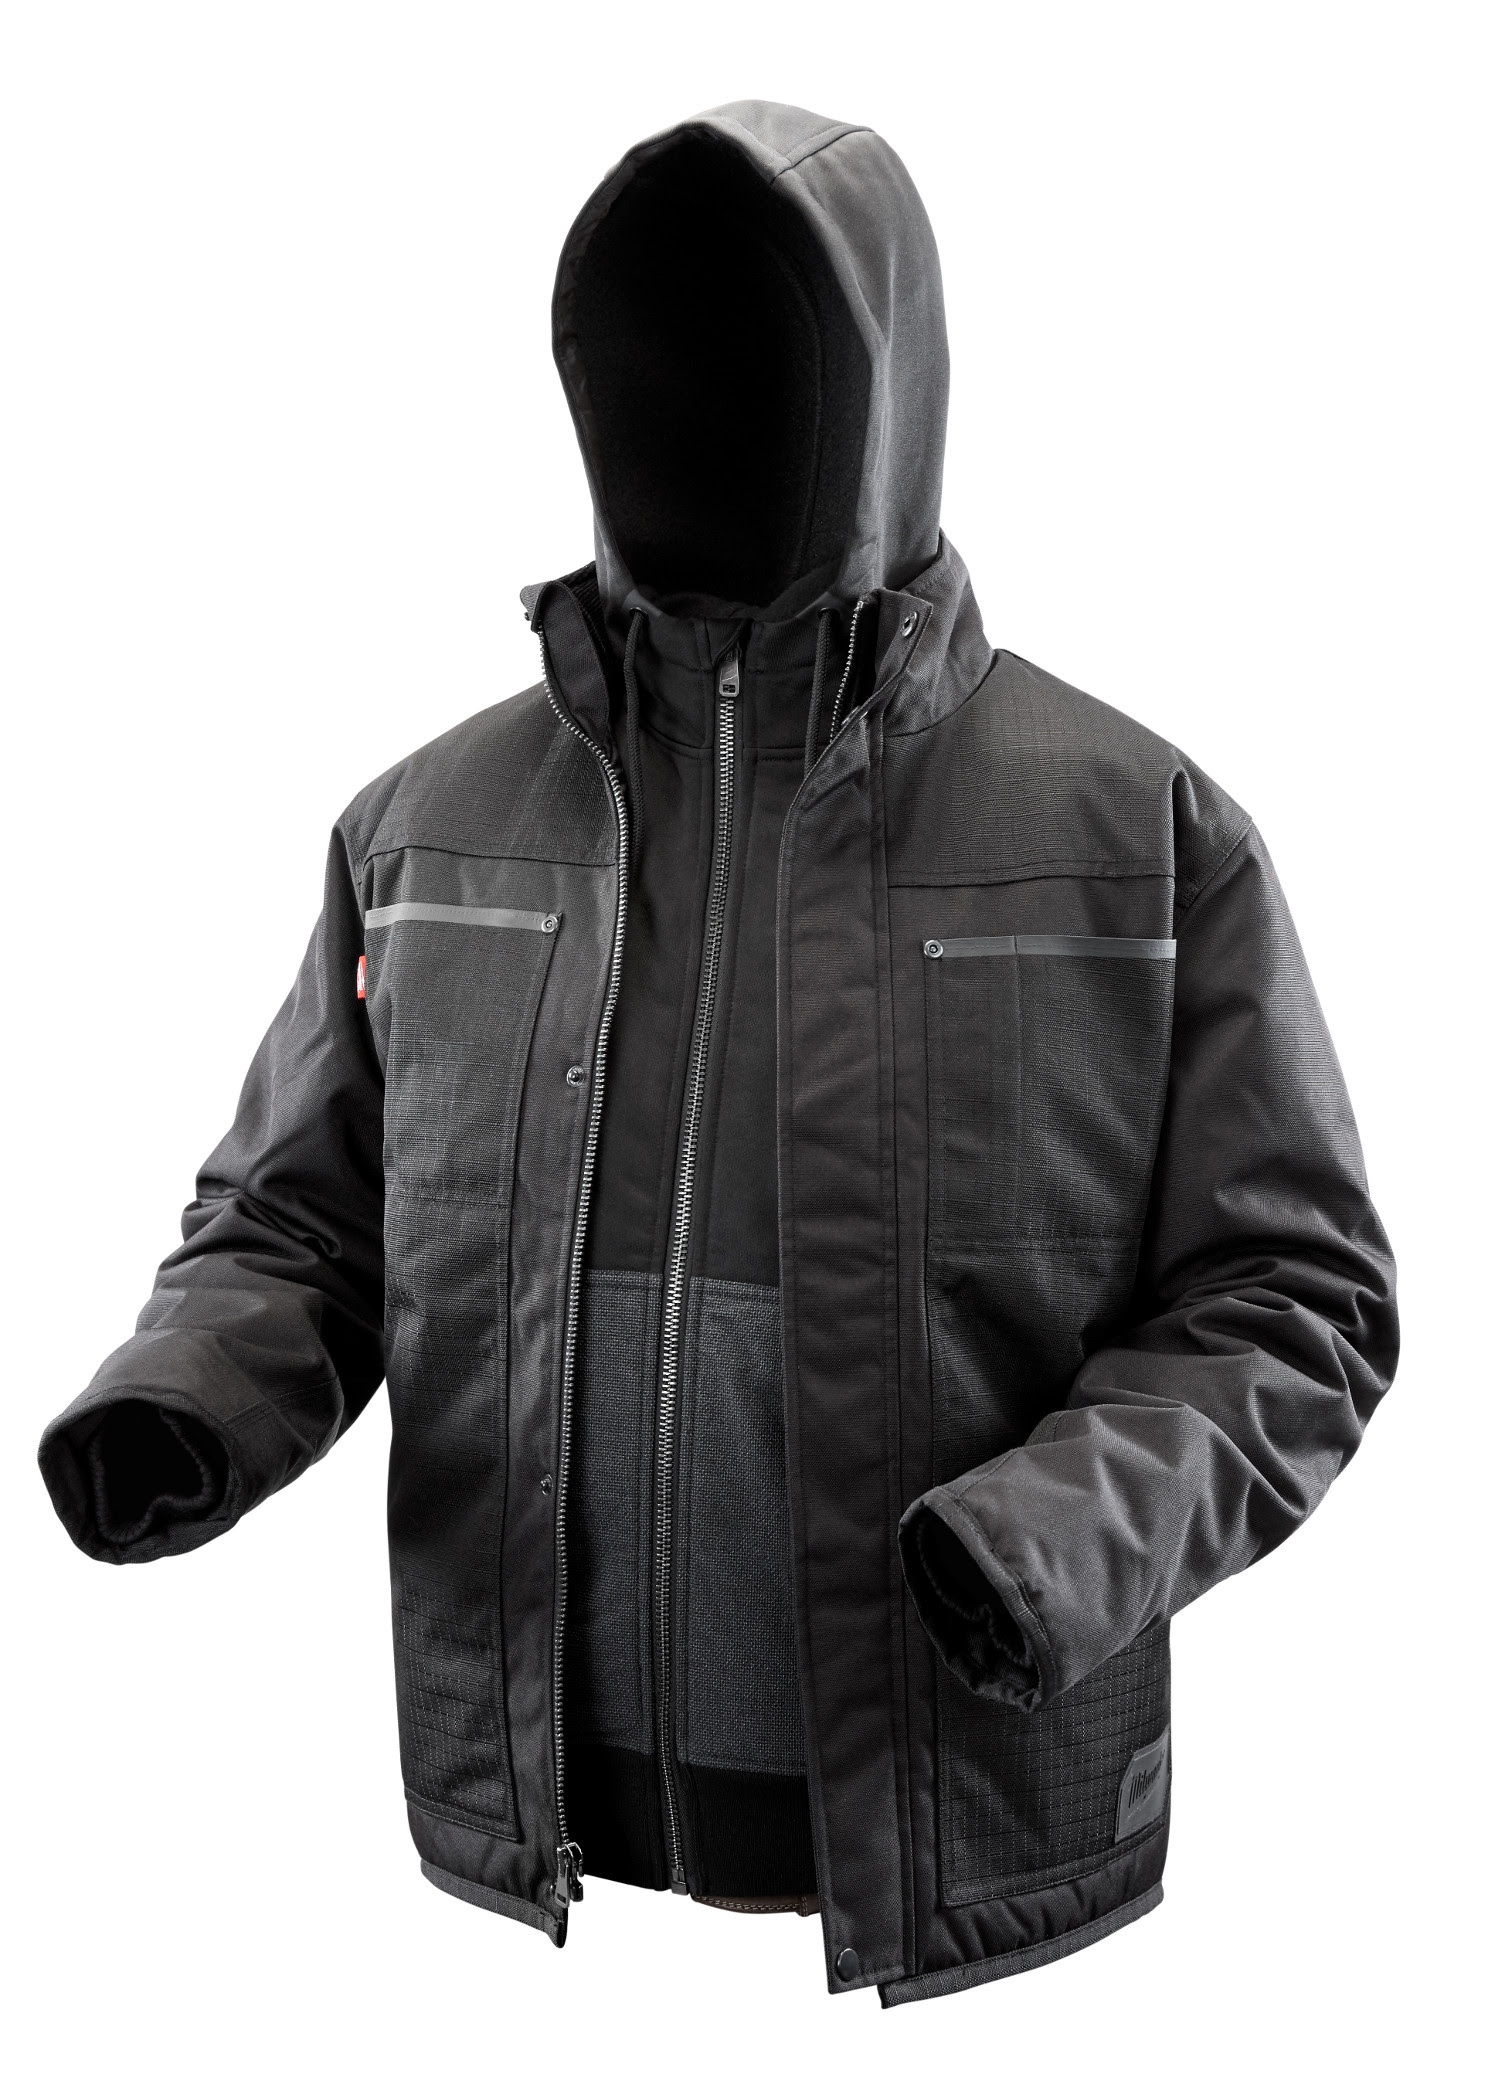 M12 3in1 Heated Ripstop Jacket